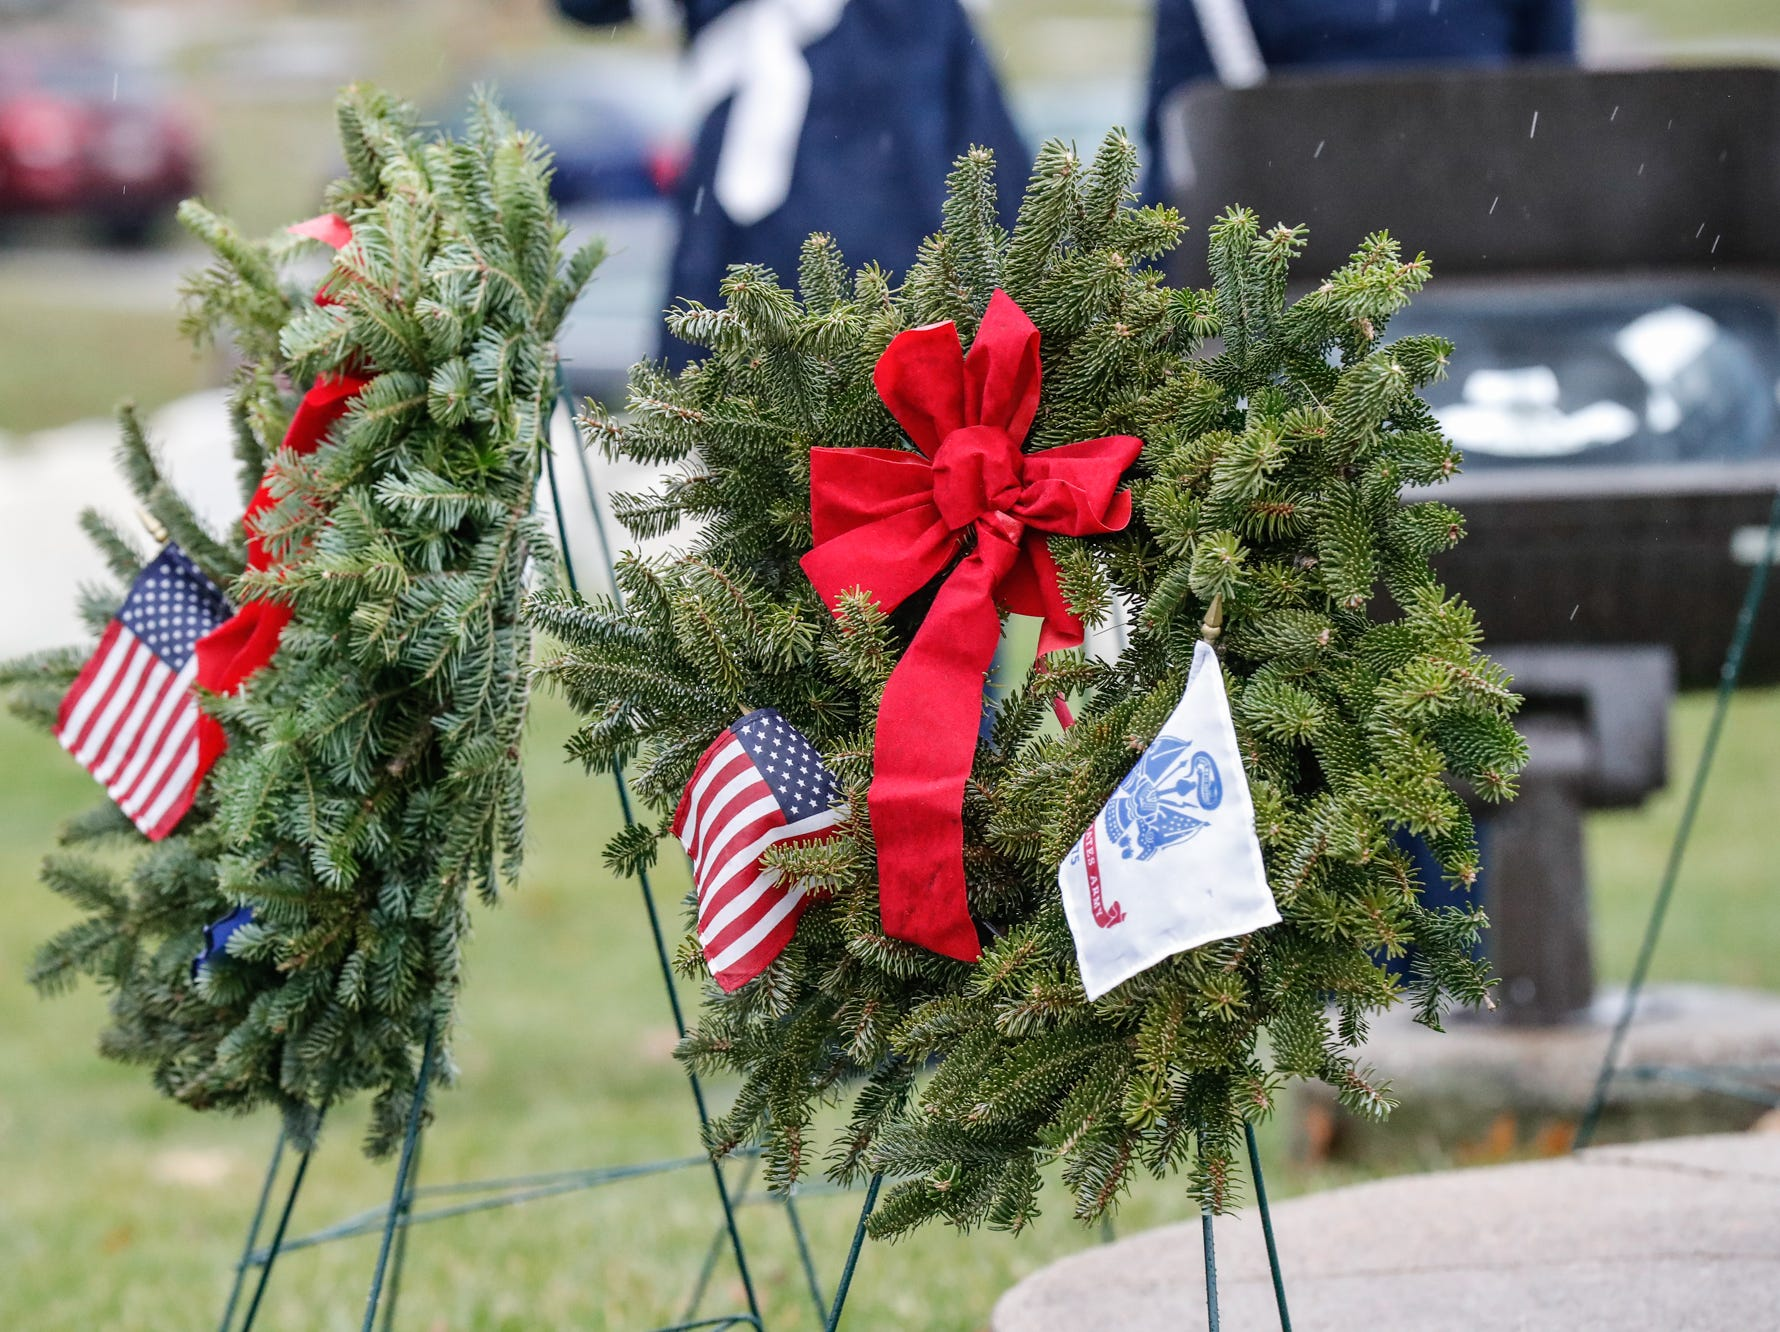 Wreath are laid during the Wreaths Across America wreath laying in remembrance of fallen military heroes at Crown Hill Cemetery on Saturday, Dec. 2018.